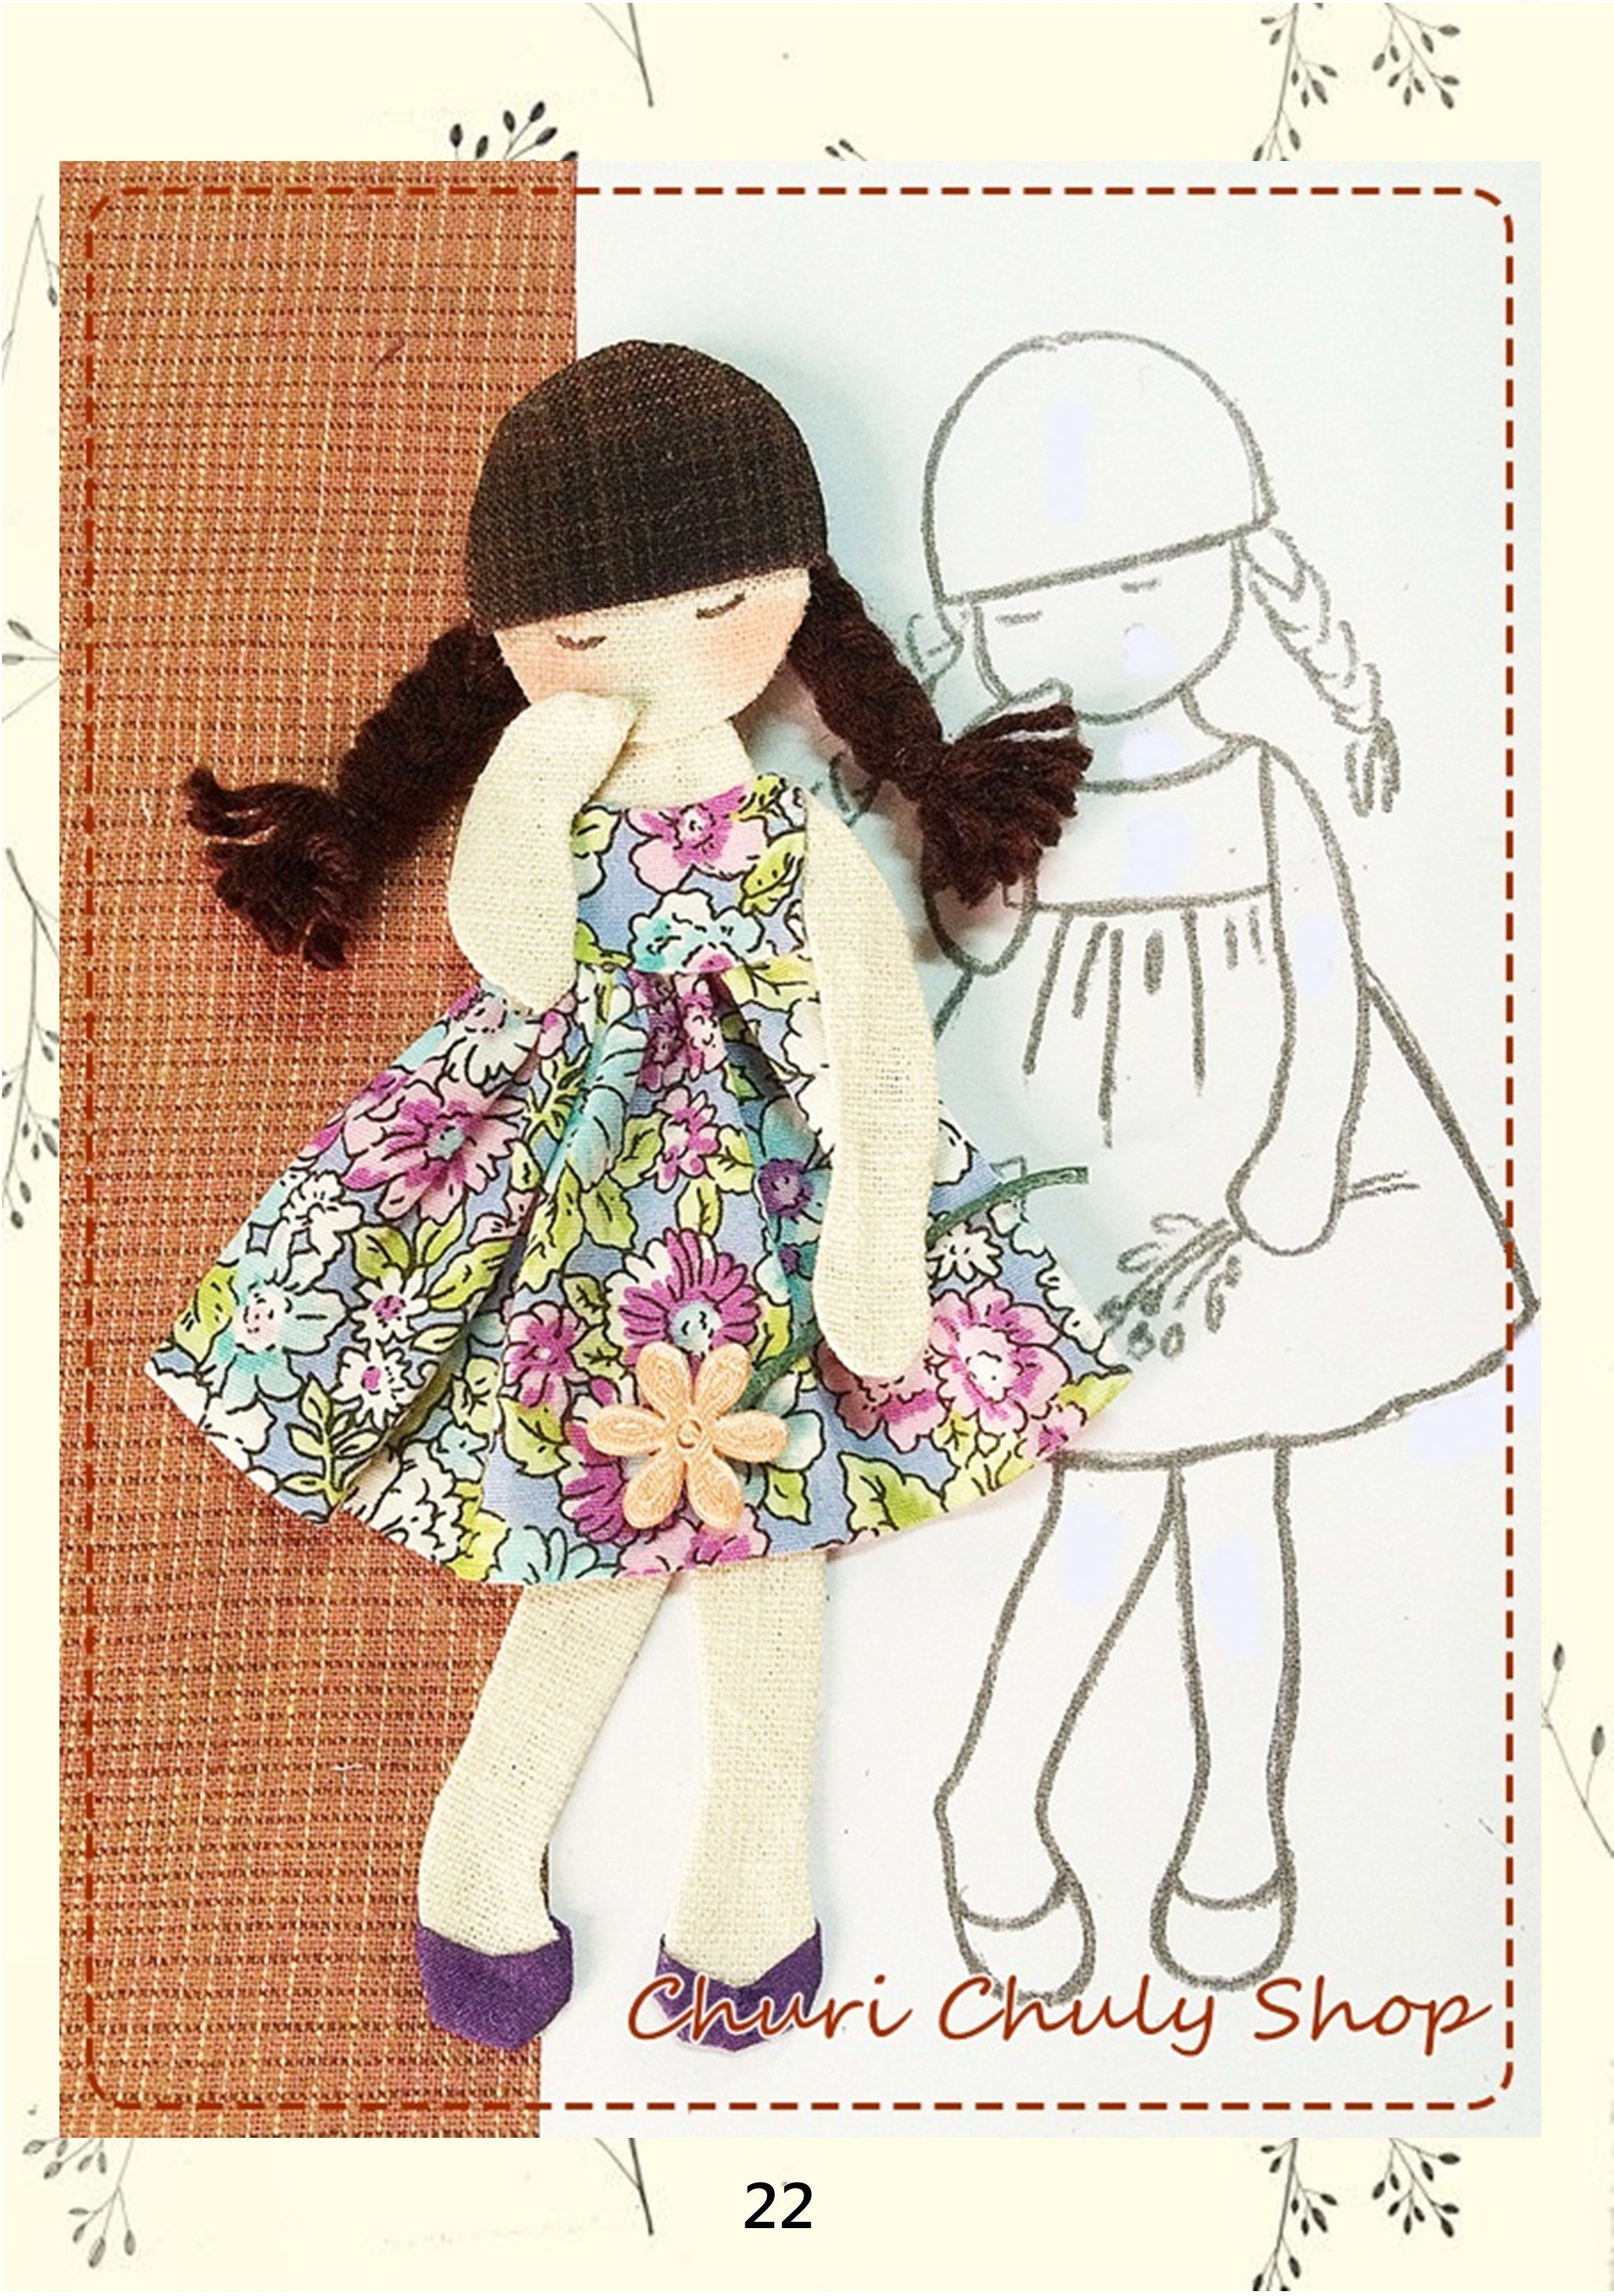 Chuly......By Churi Chuly Shop   Appliqueworks.........   Pinterest ...